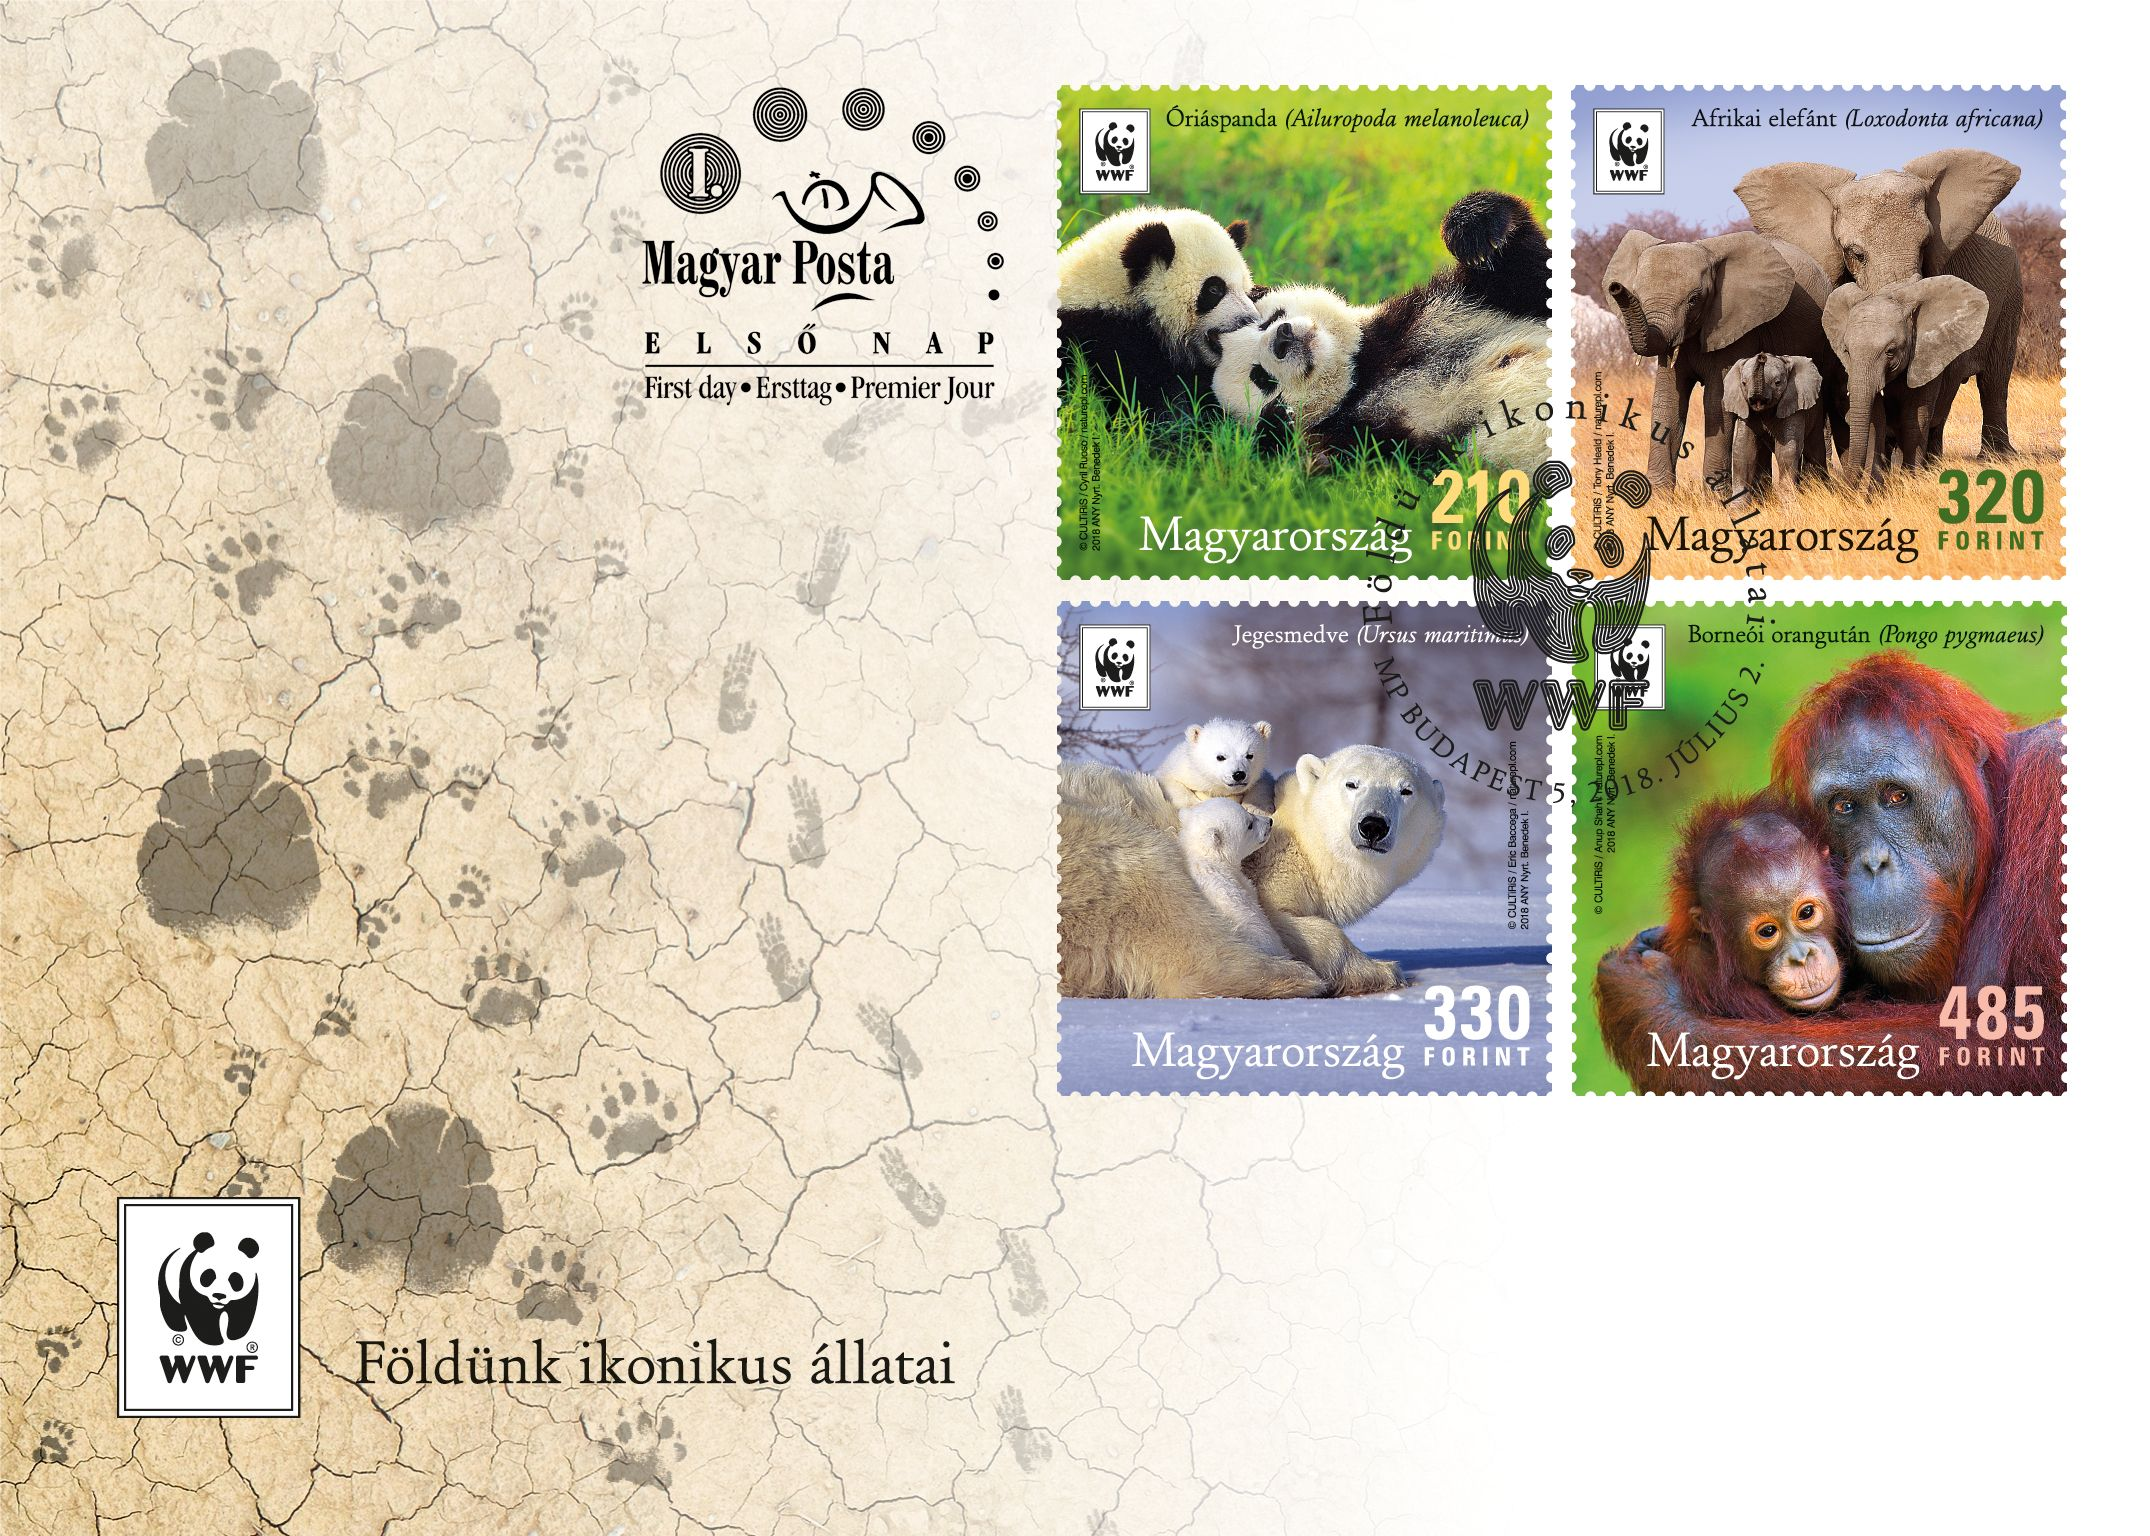 WWF Hungary: Earth's iconic animals